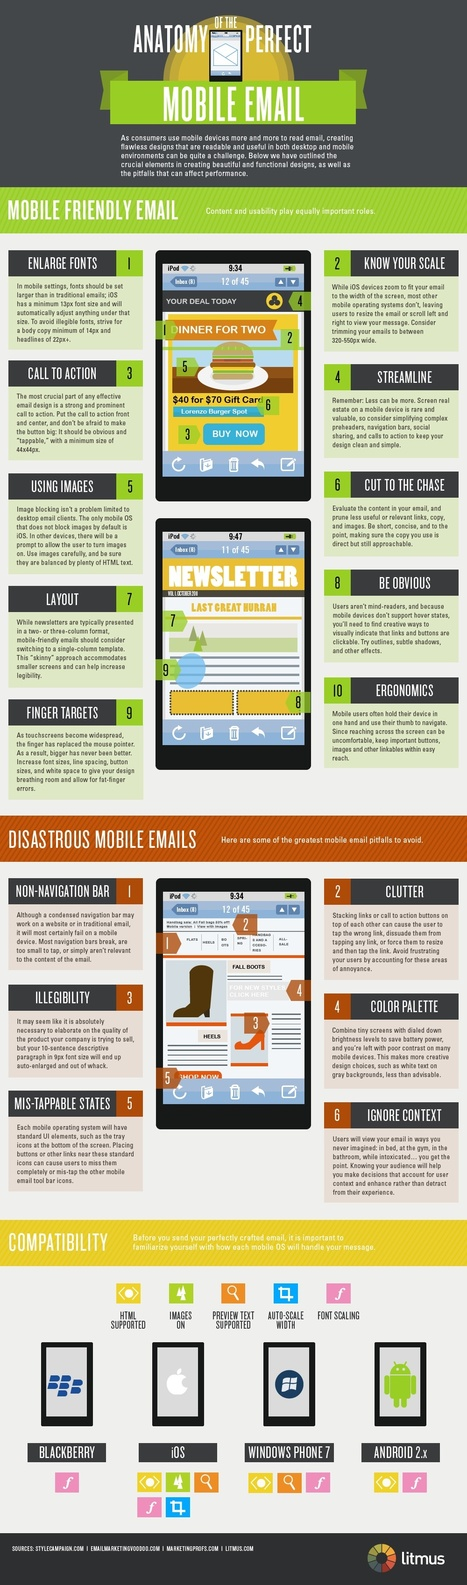 Infographic: Anatomy of the Perfect Mobile Email | ValterGouveia.com - News | Scoop.it